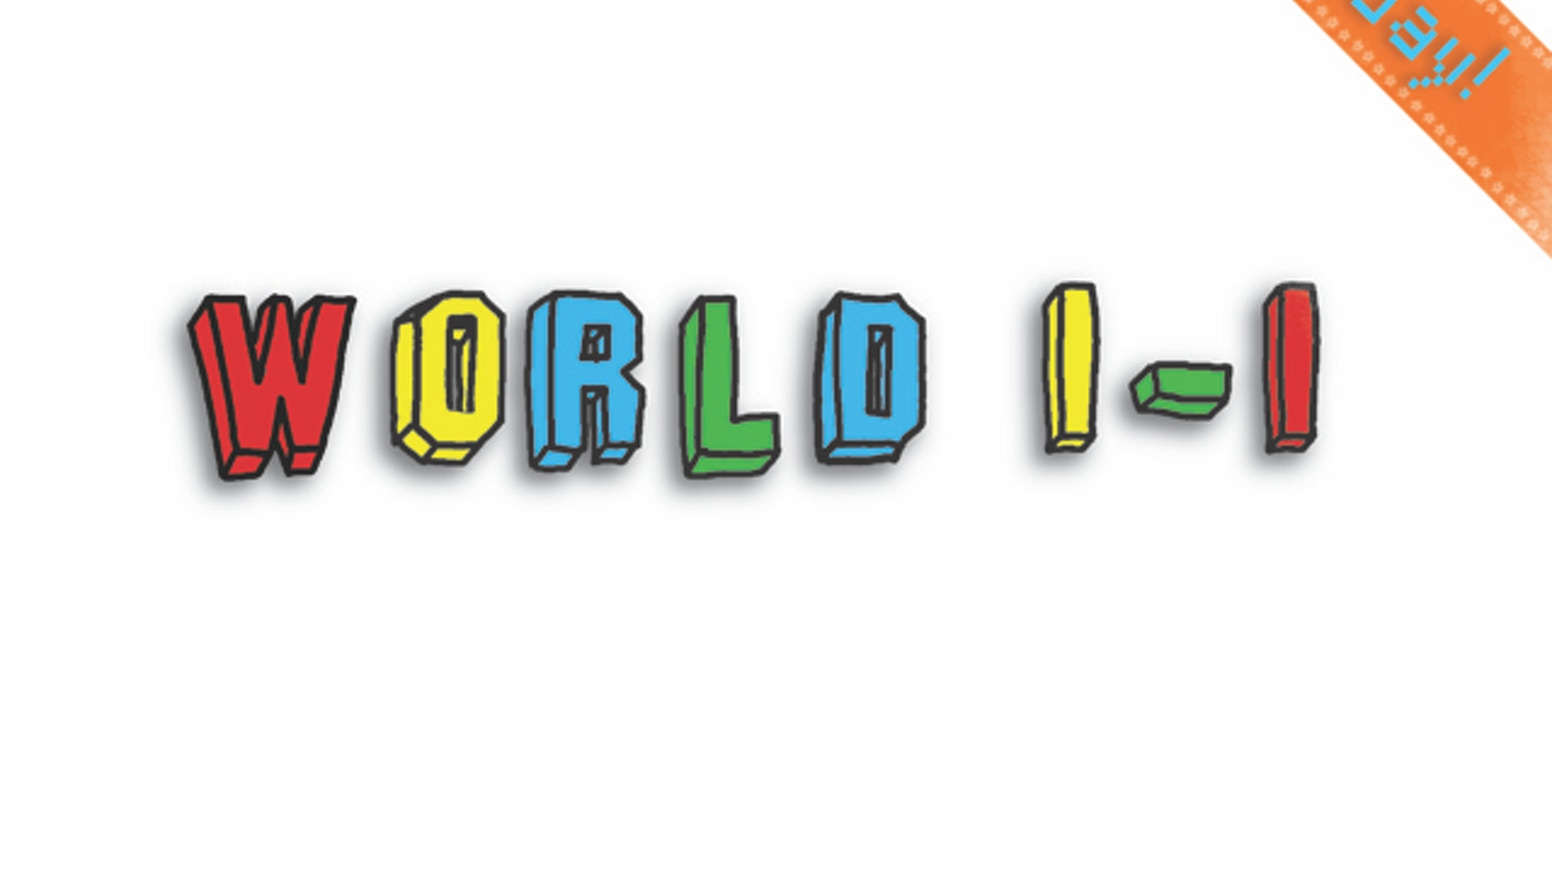 World 1-1 is the first in a documentary series on the history of video games. This is the story of the early years.